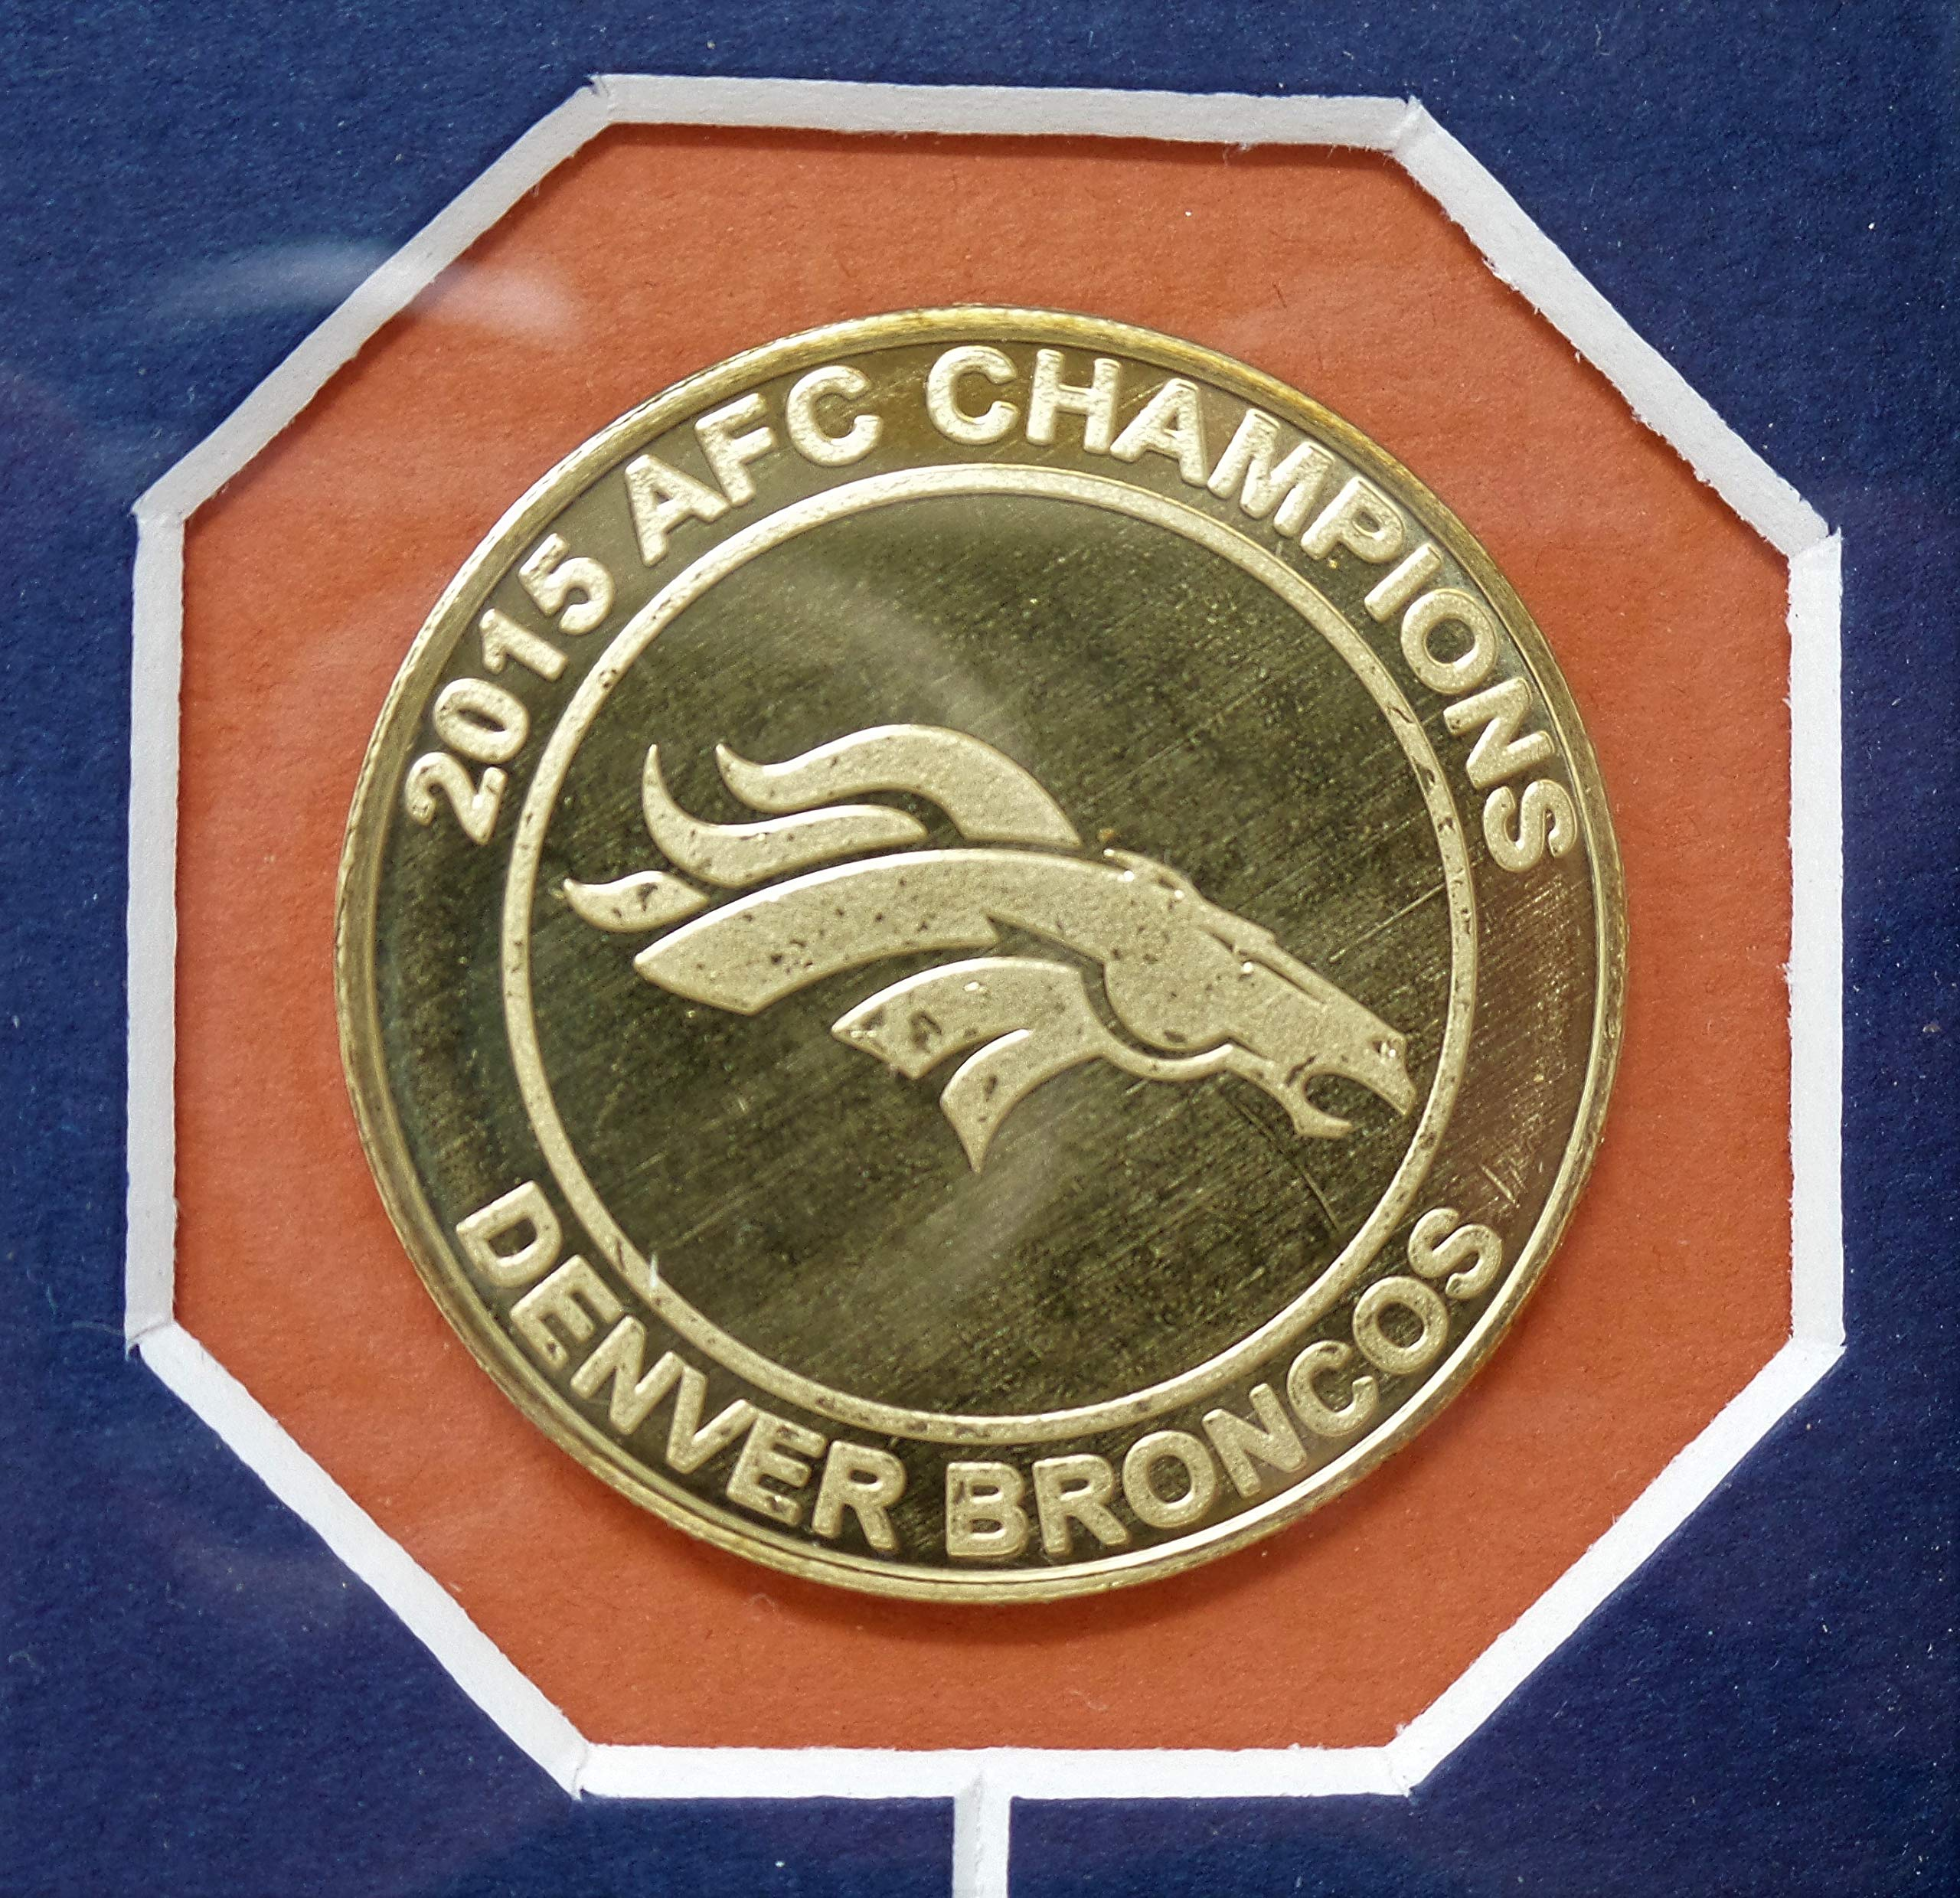 "Denver Broncos Super Bowl 50 Plaque And Collectors Coins By The Highland Mint 16"" x 13"" (Great For Mancave Display) Free Shipping"